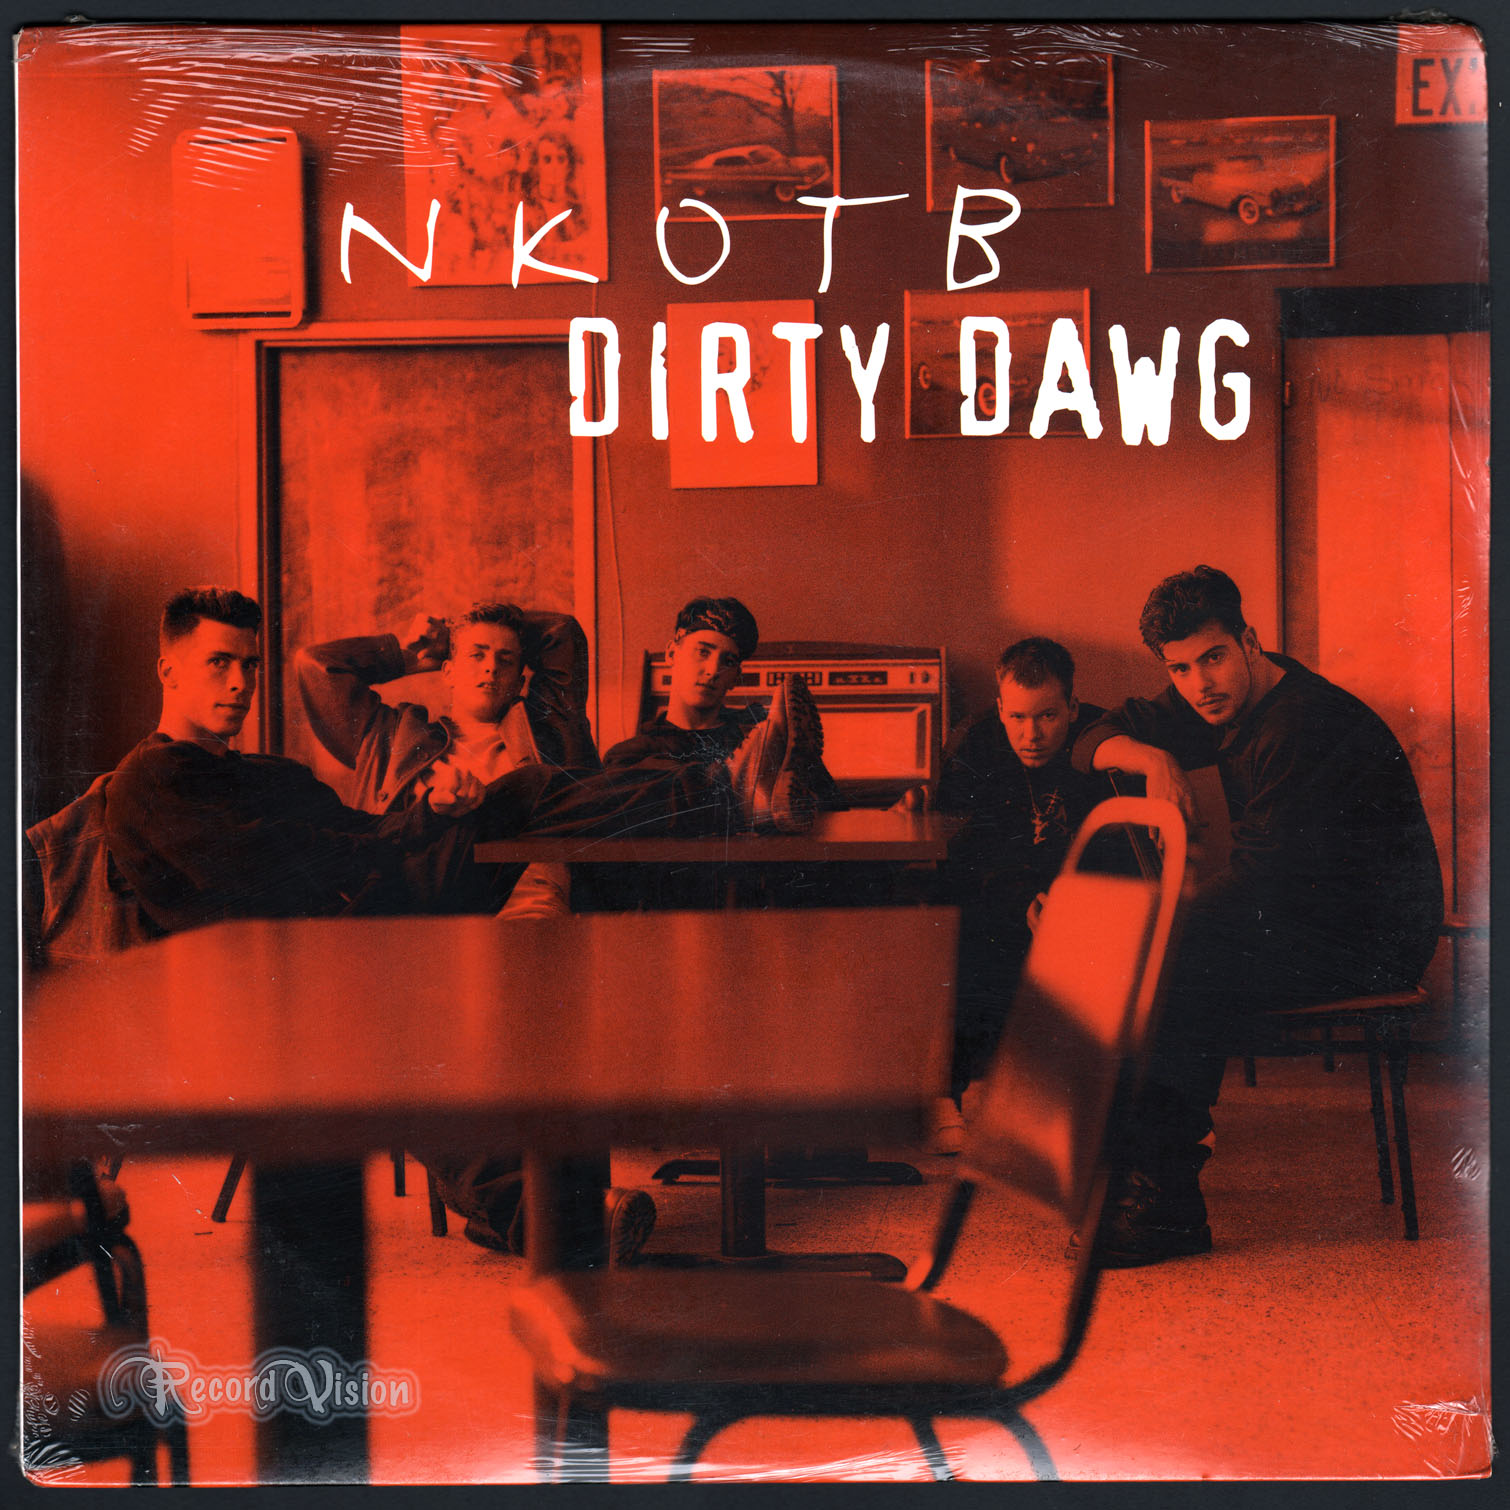 NEW KIDS ON THE BLOCK - Dirty Dawg - 12 inch x 1